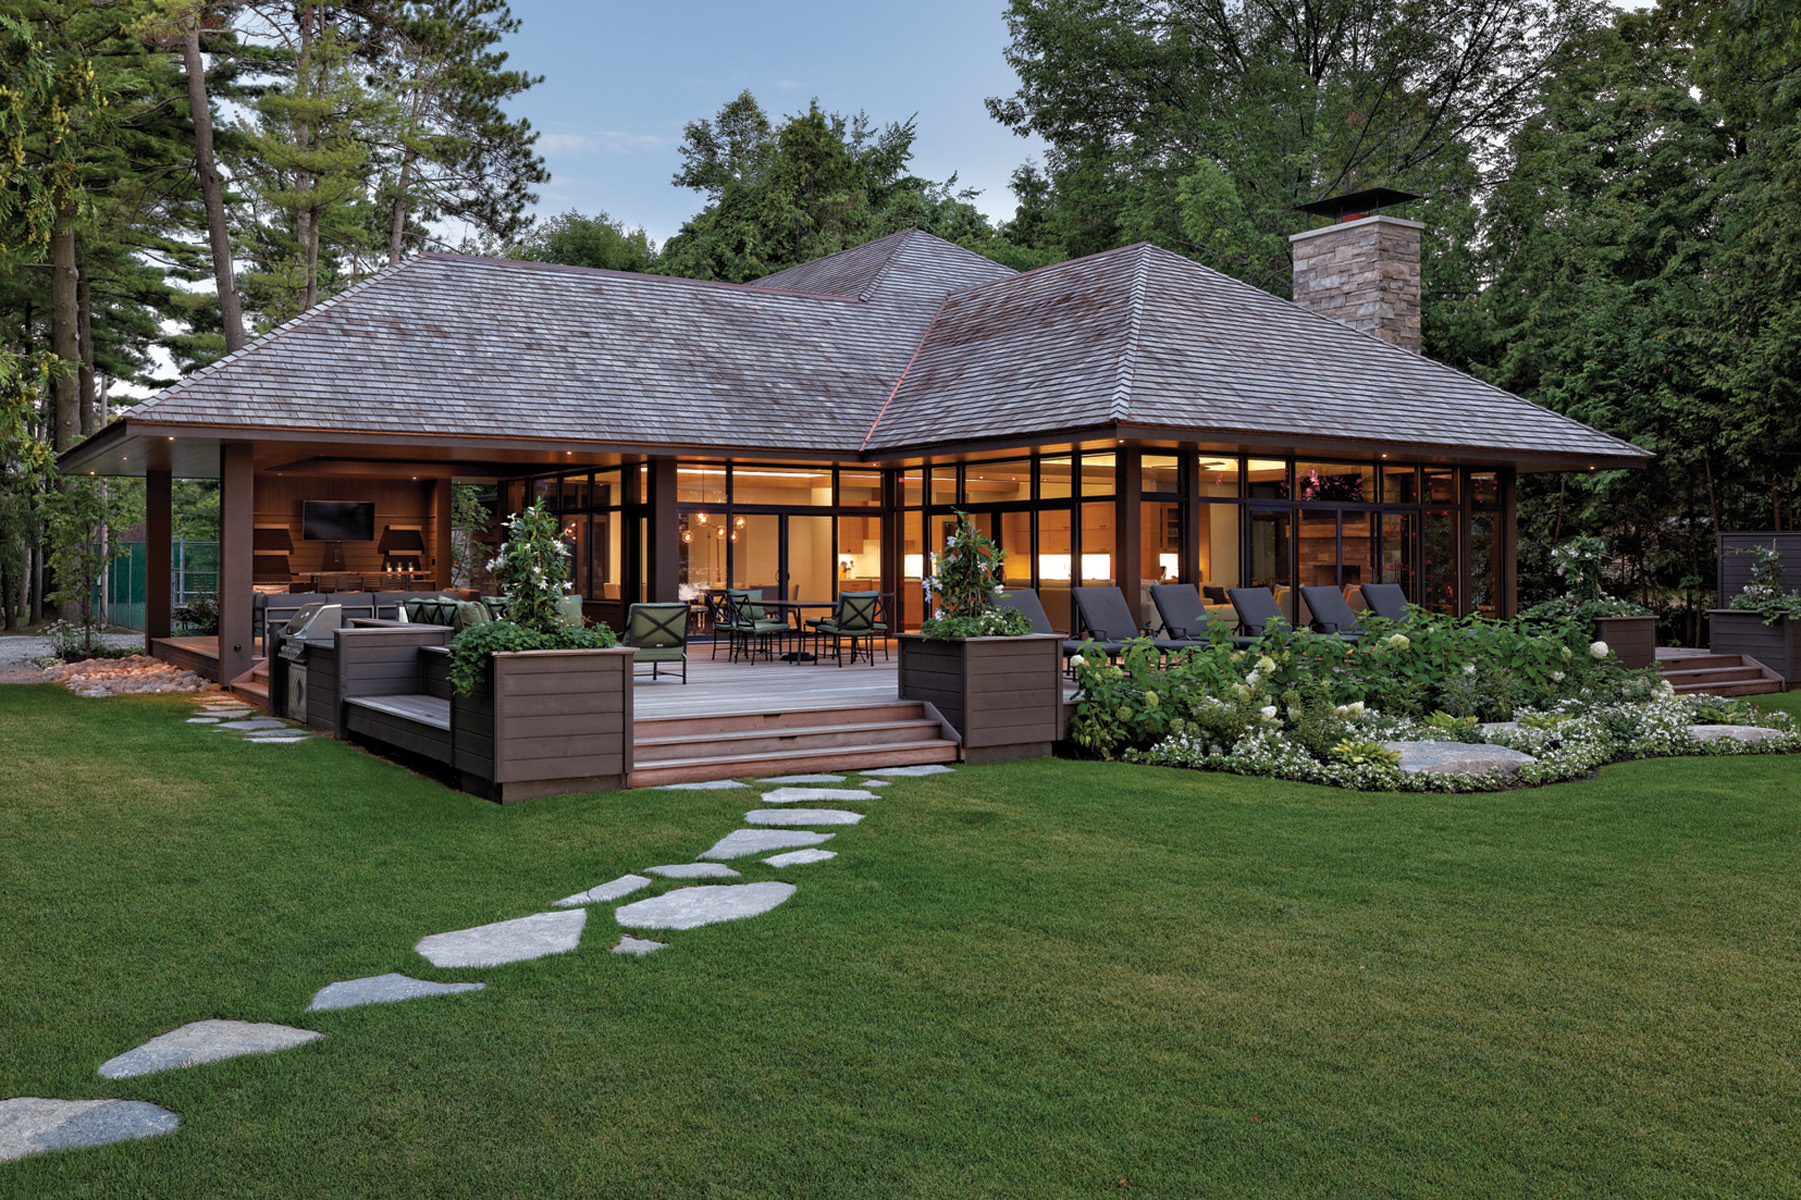 Illuminated cottage with stone walkway across front lawn to large deck at entrance with lounge chairs and gardening in front